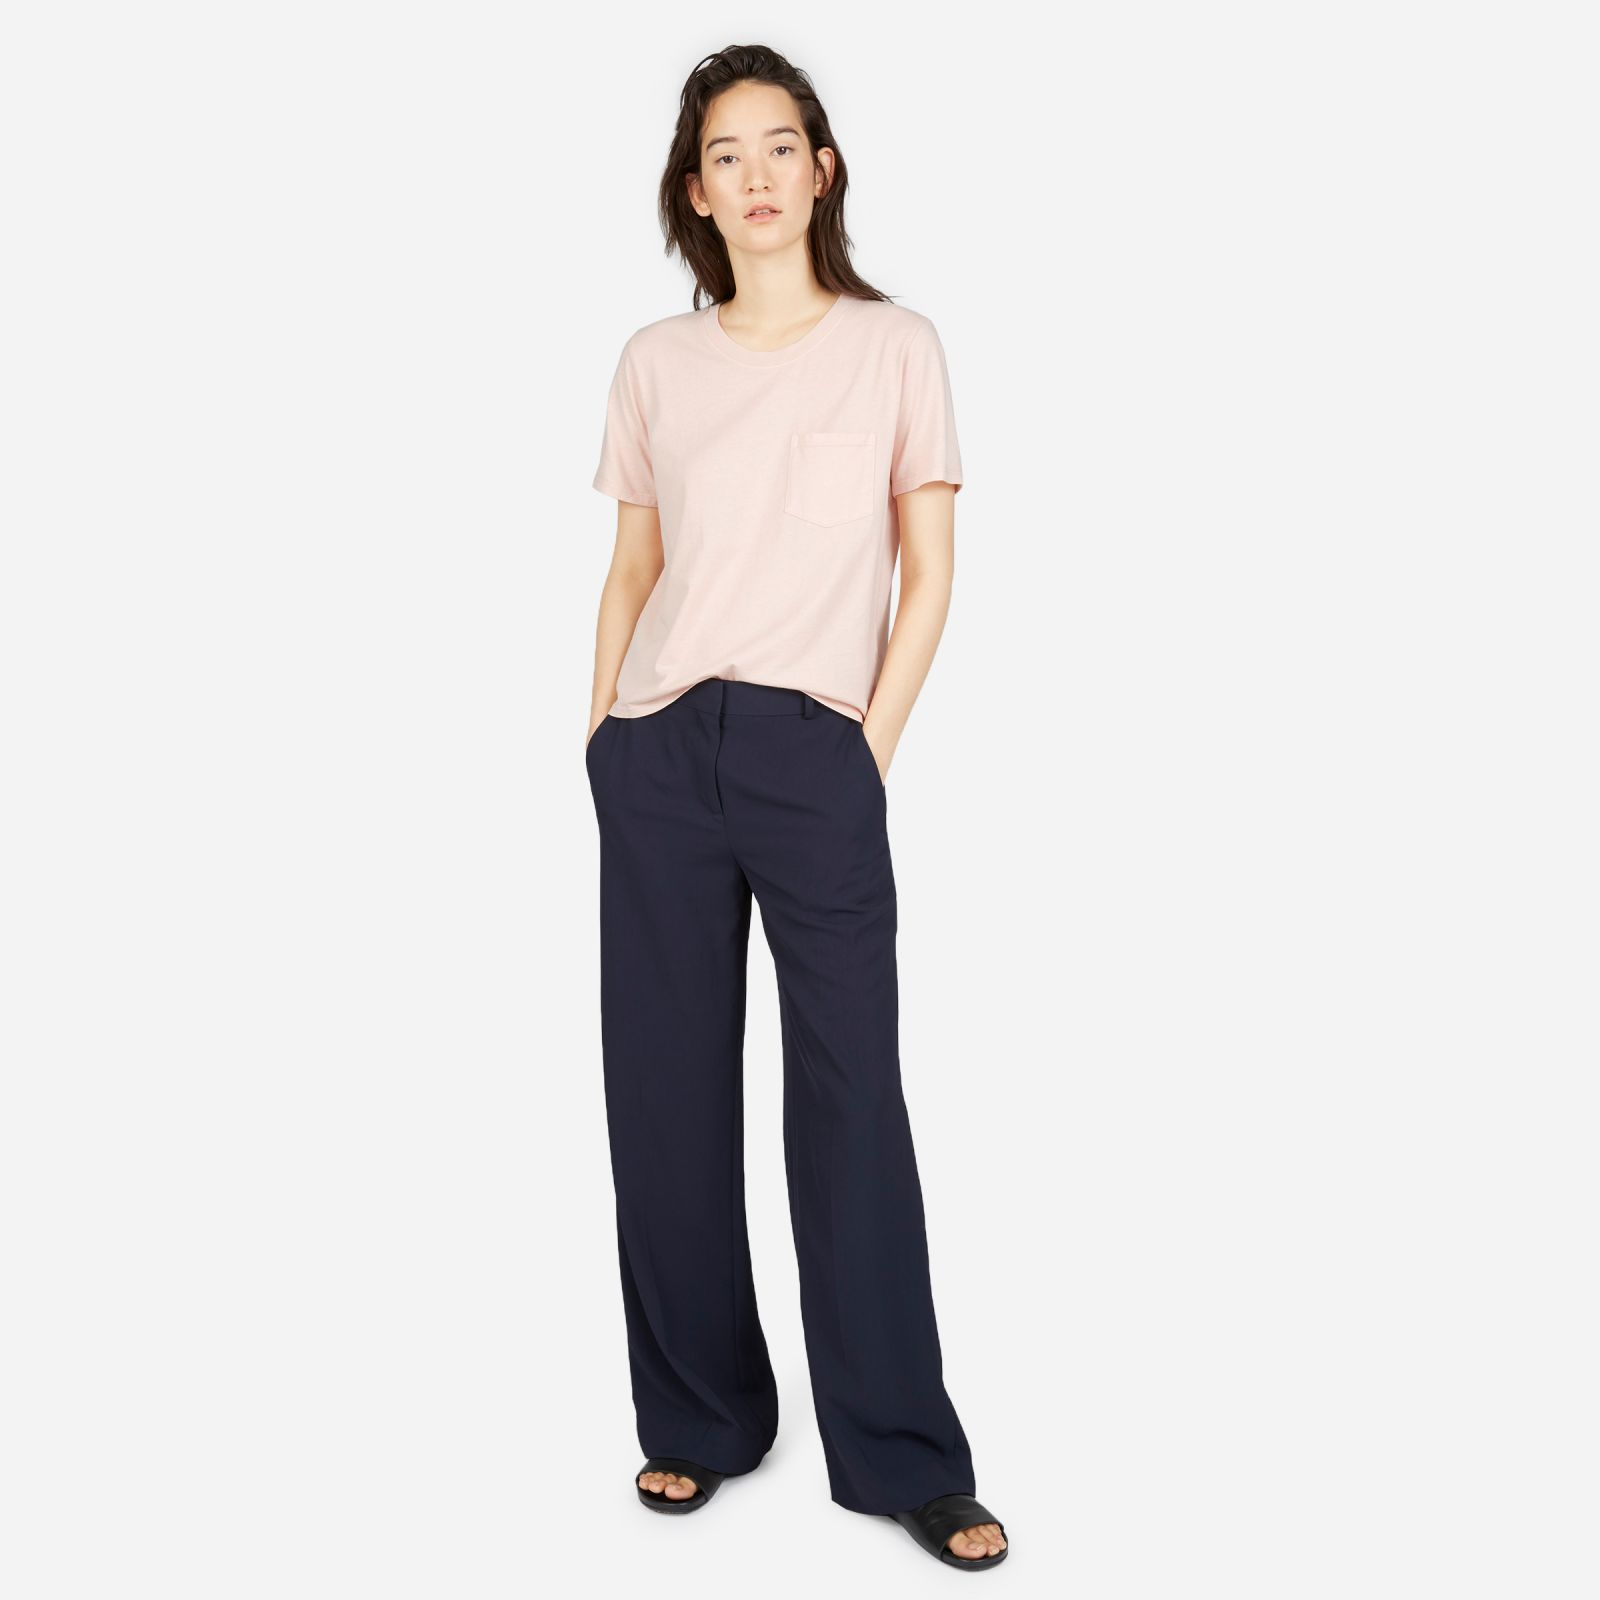 women's cotton box-cut pocket t-shirt by everlane in rose, size xl